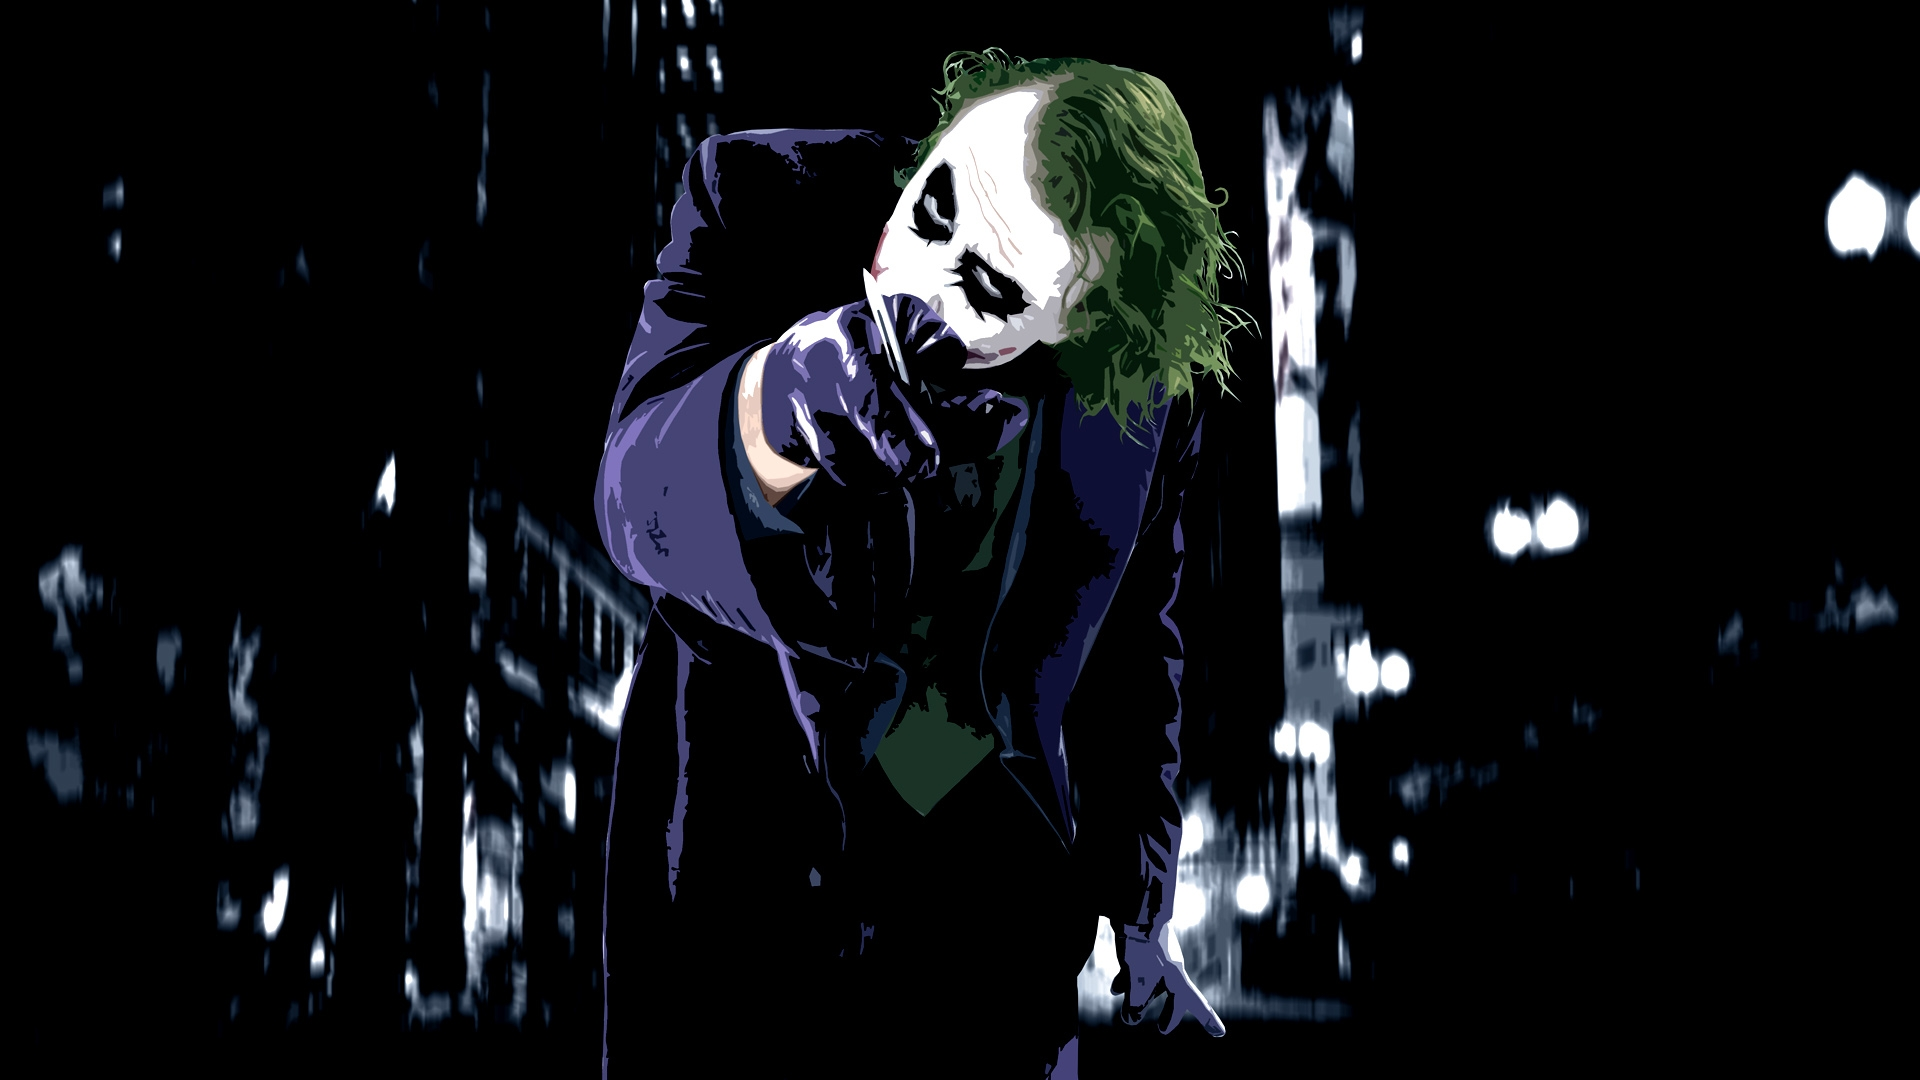 The Joker Wallpapers